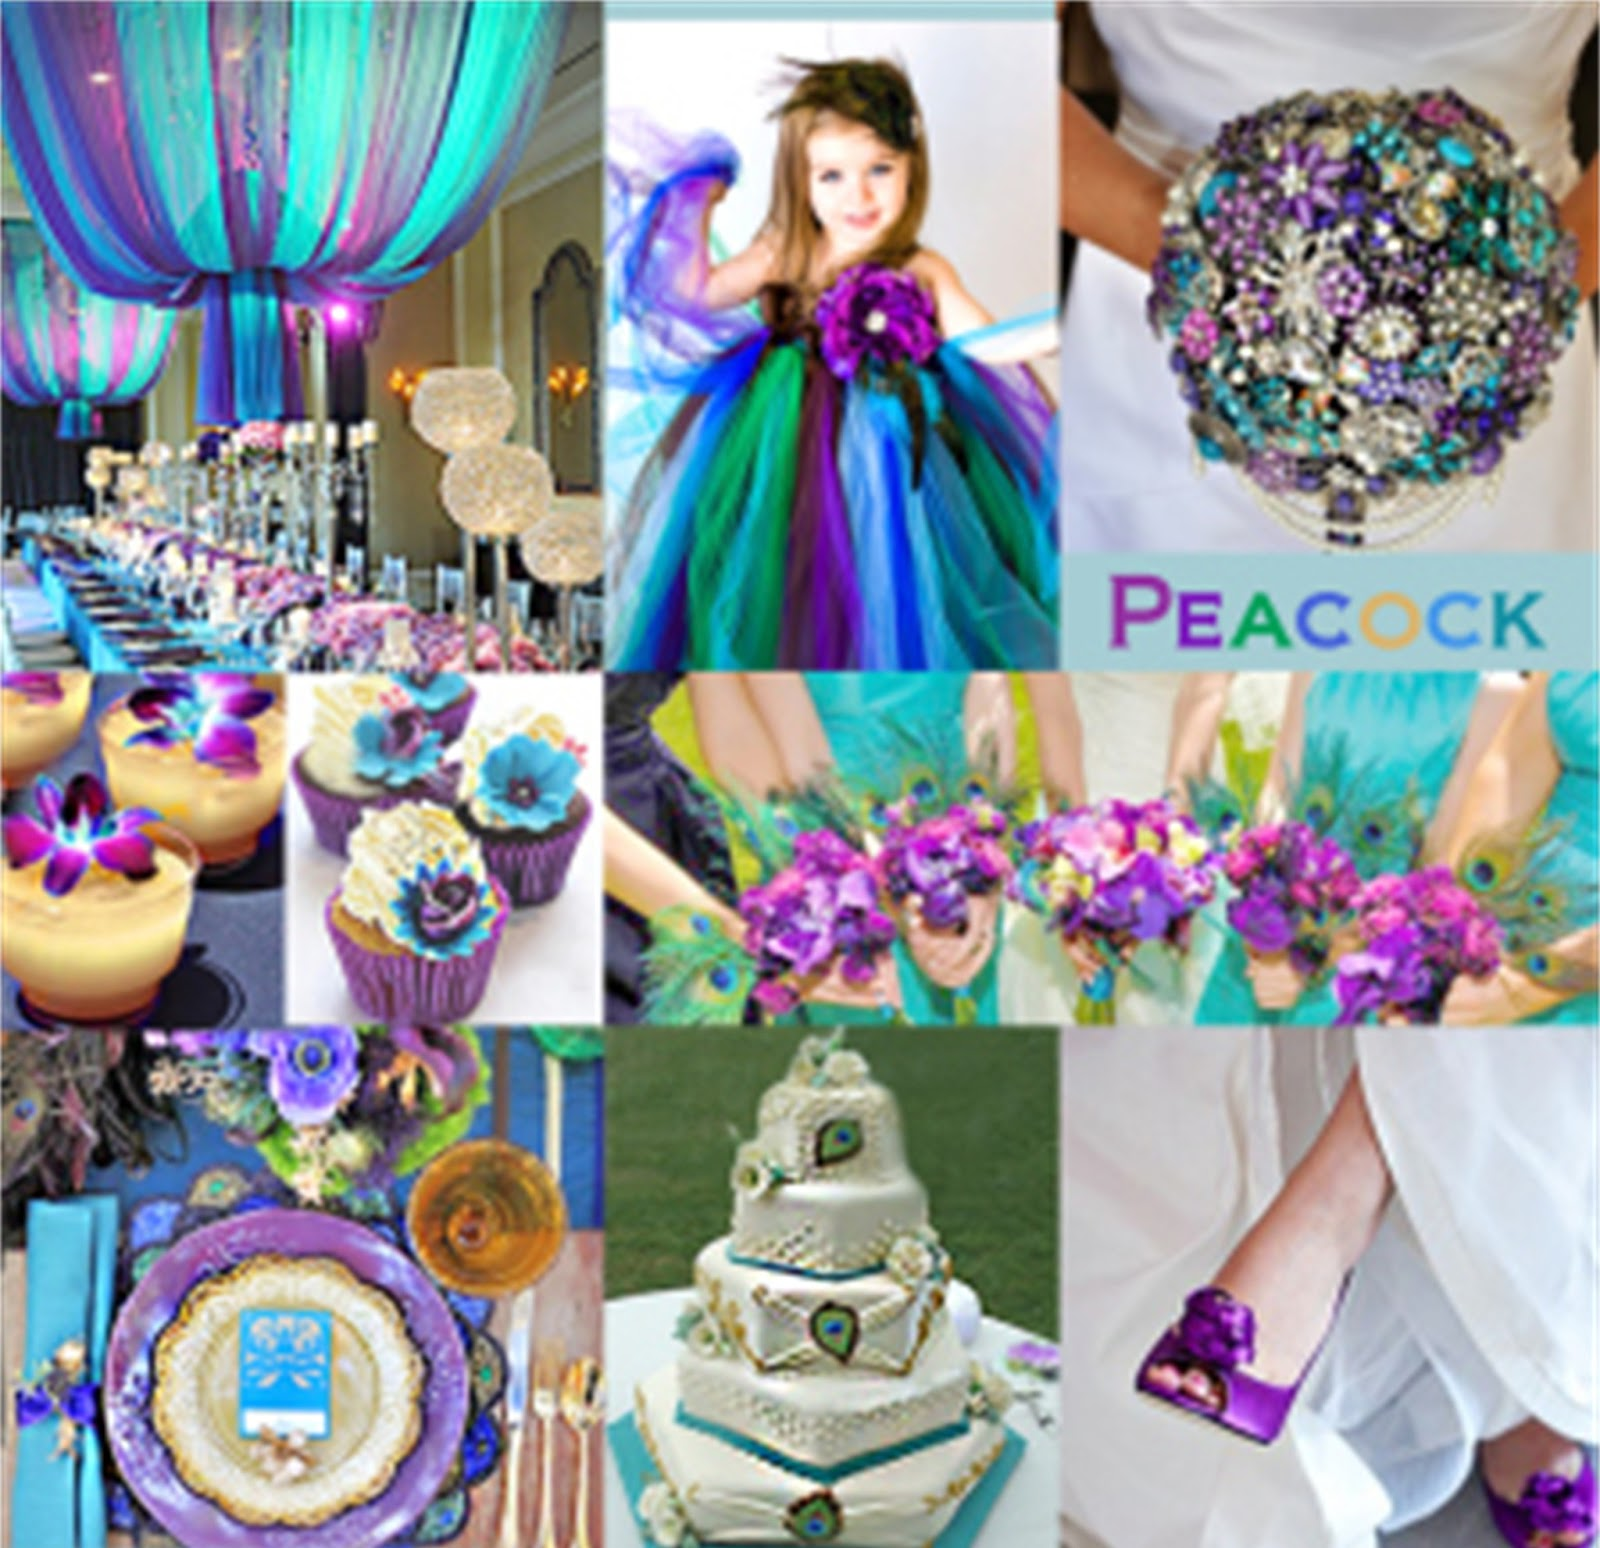 Angee's Eventions: Peacock Themed Wedding